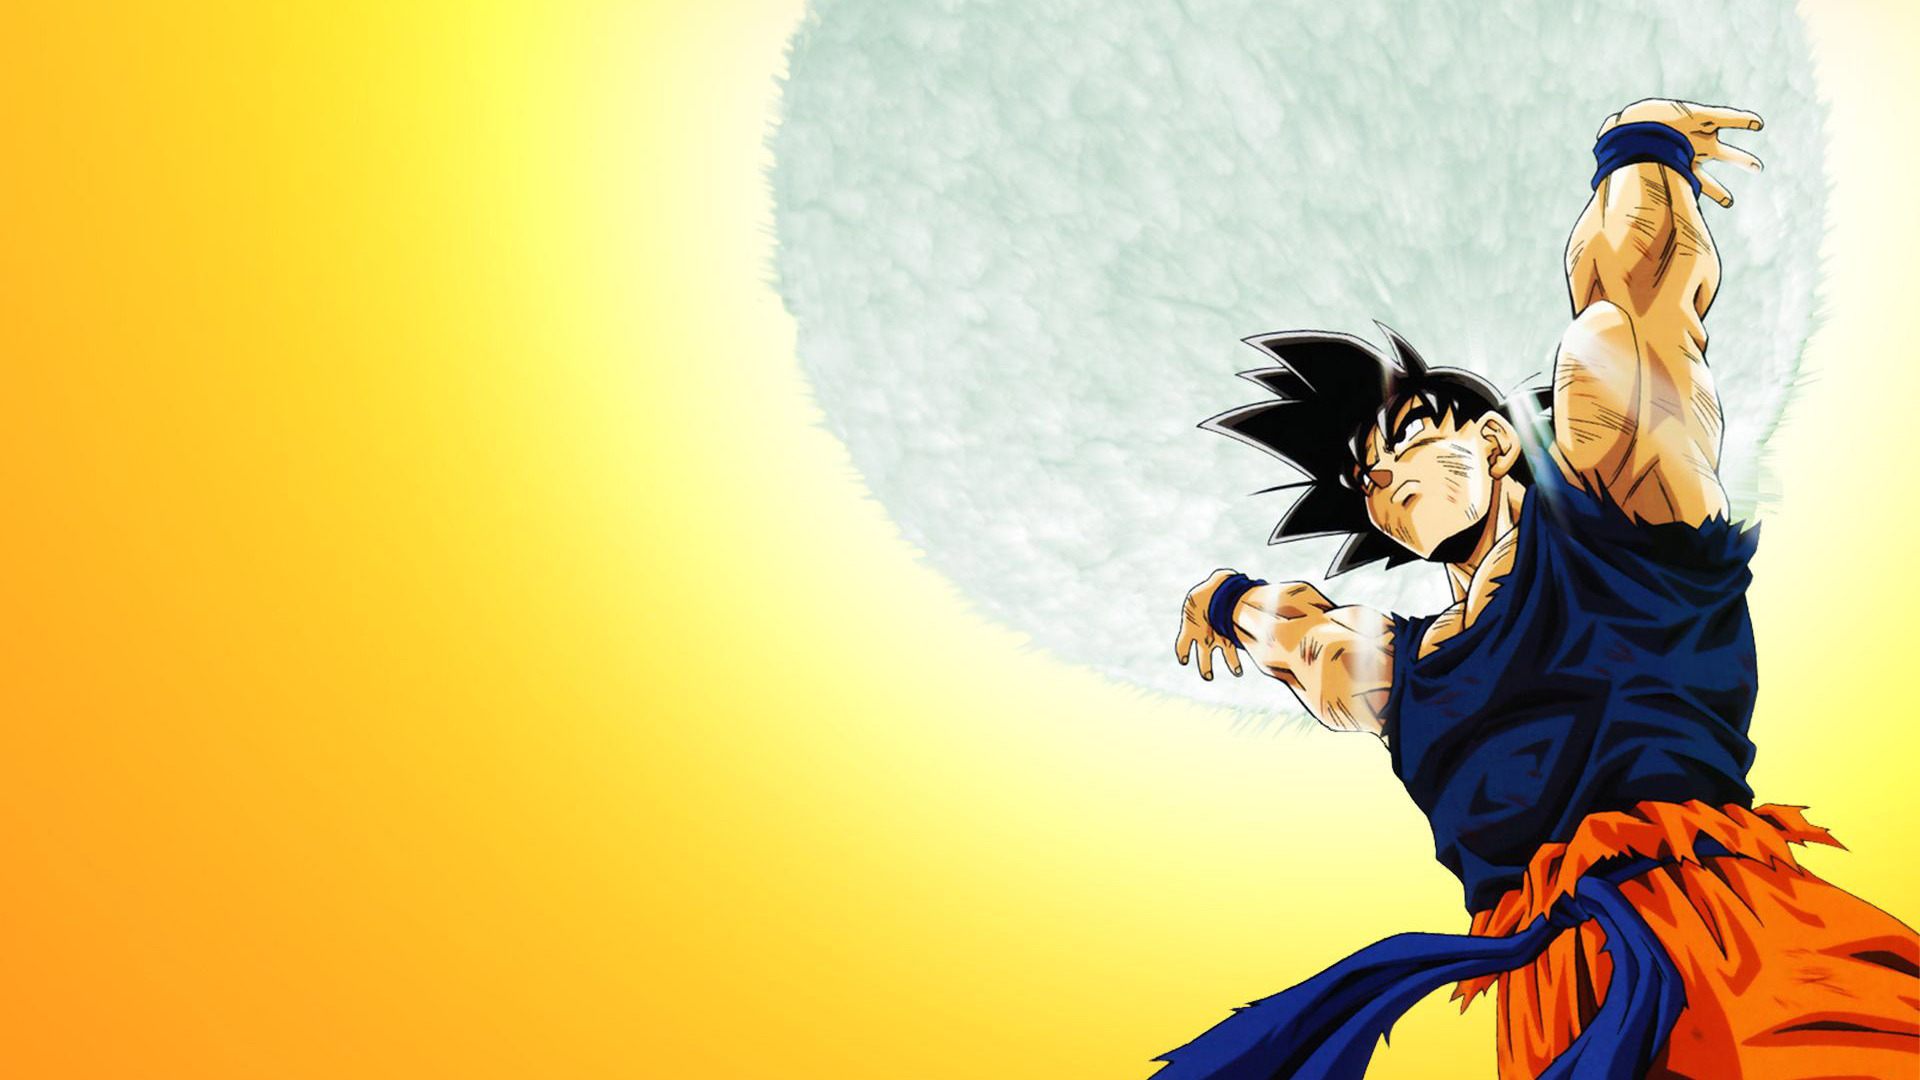 Dragon ball z wallpaper 24 of 49 son goku genki dama - Dragon ball super background music mp3 download ...